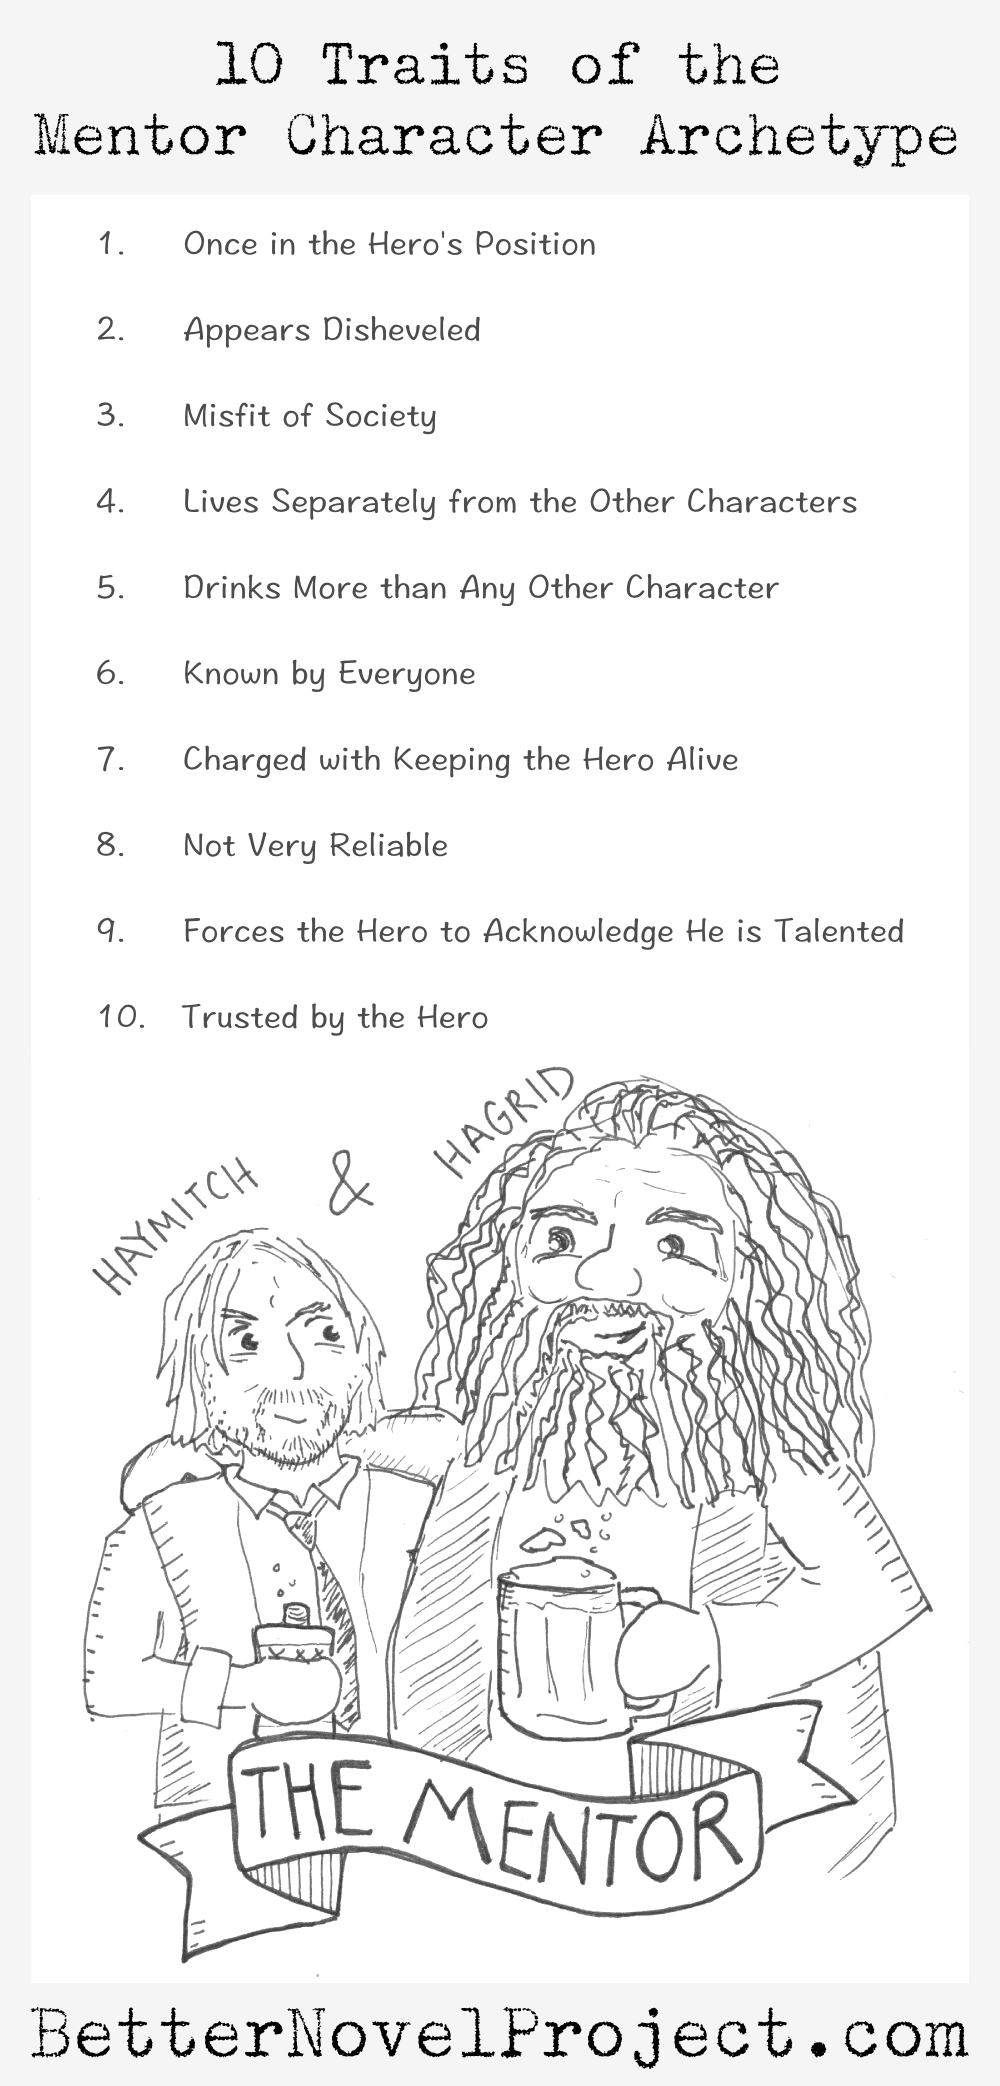 10 Traits of the Mentor Character Archetype: Hagrid